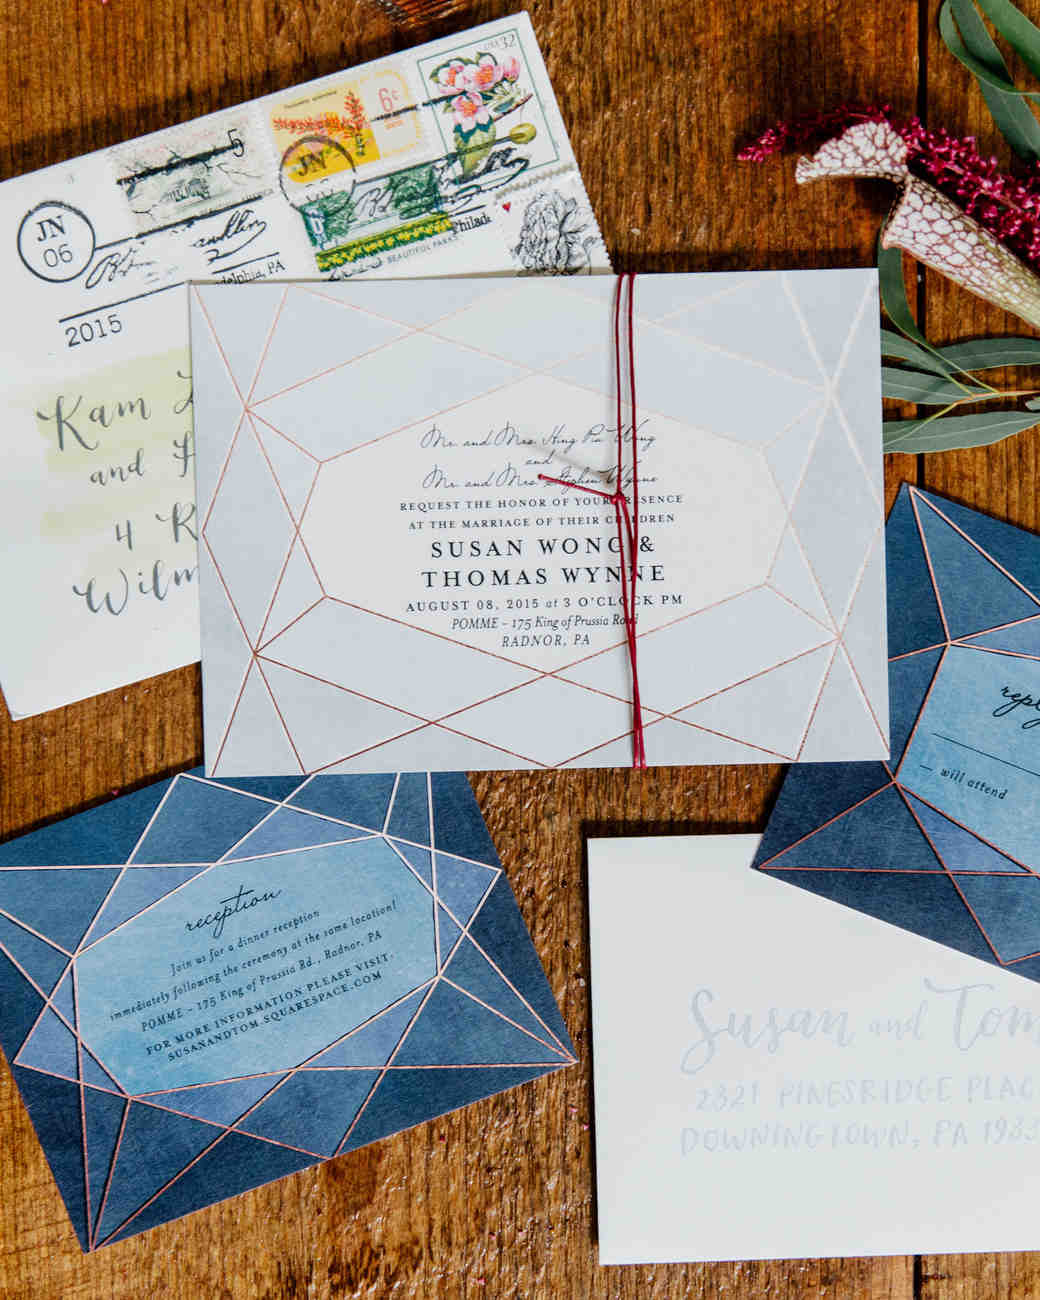 susan-tom-wedding-invite-001-s112692-0316.jpg